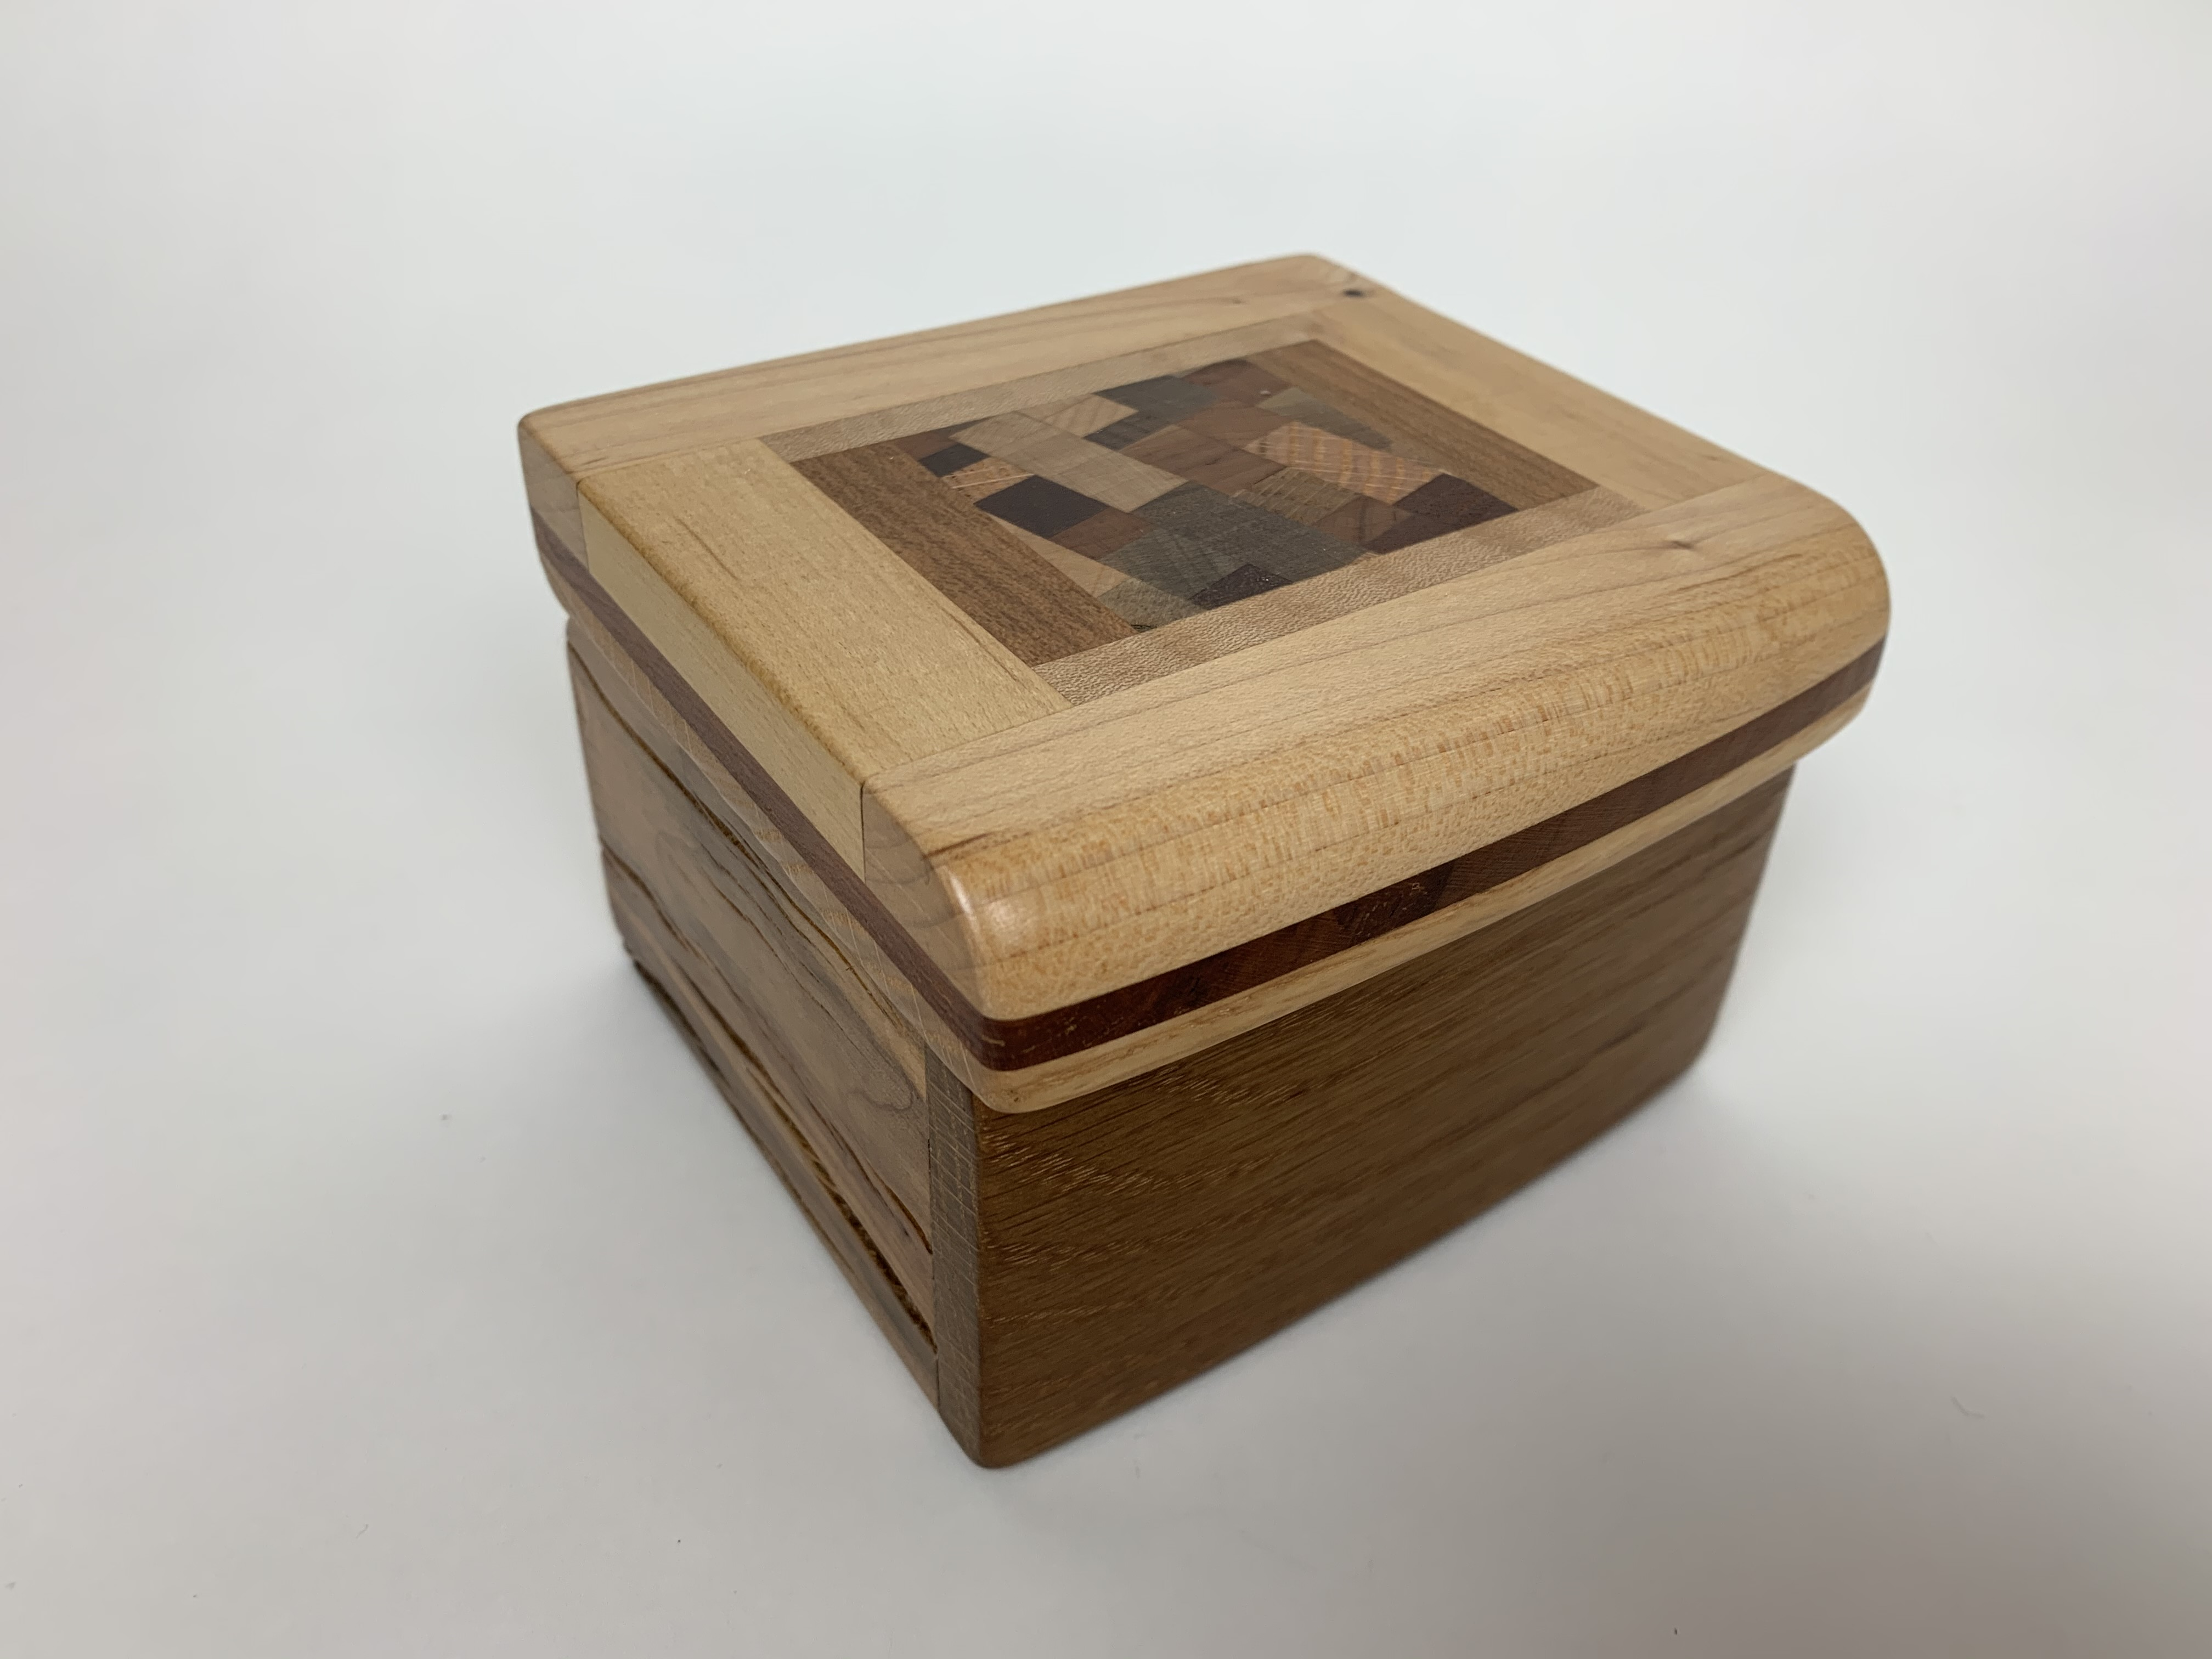 Square Box w/ Geograpics - 1